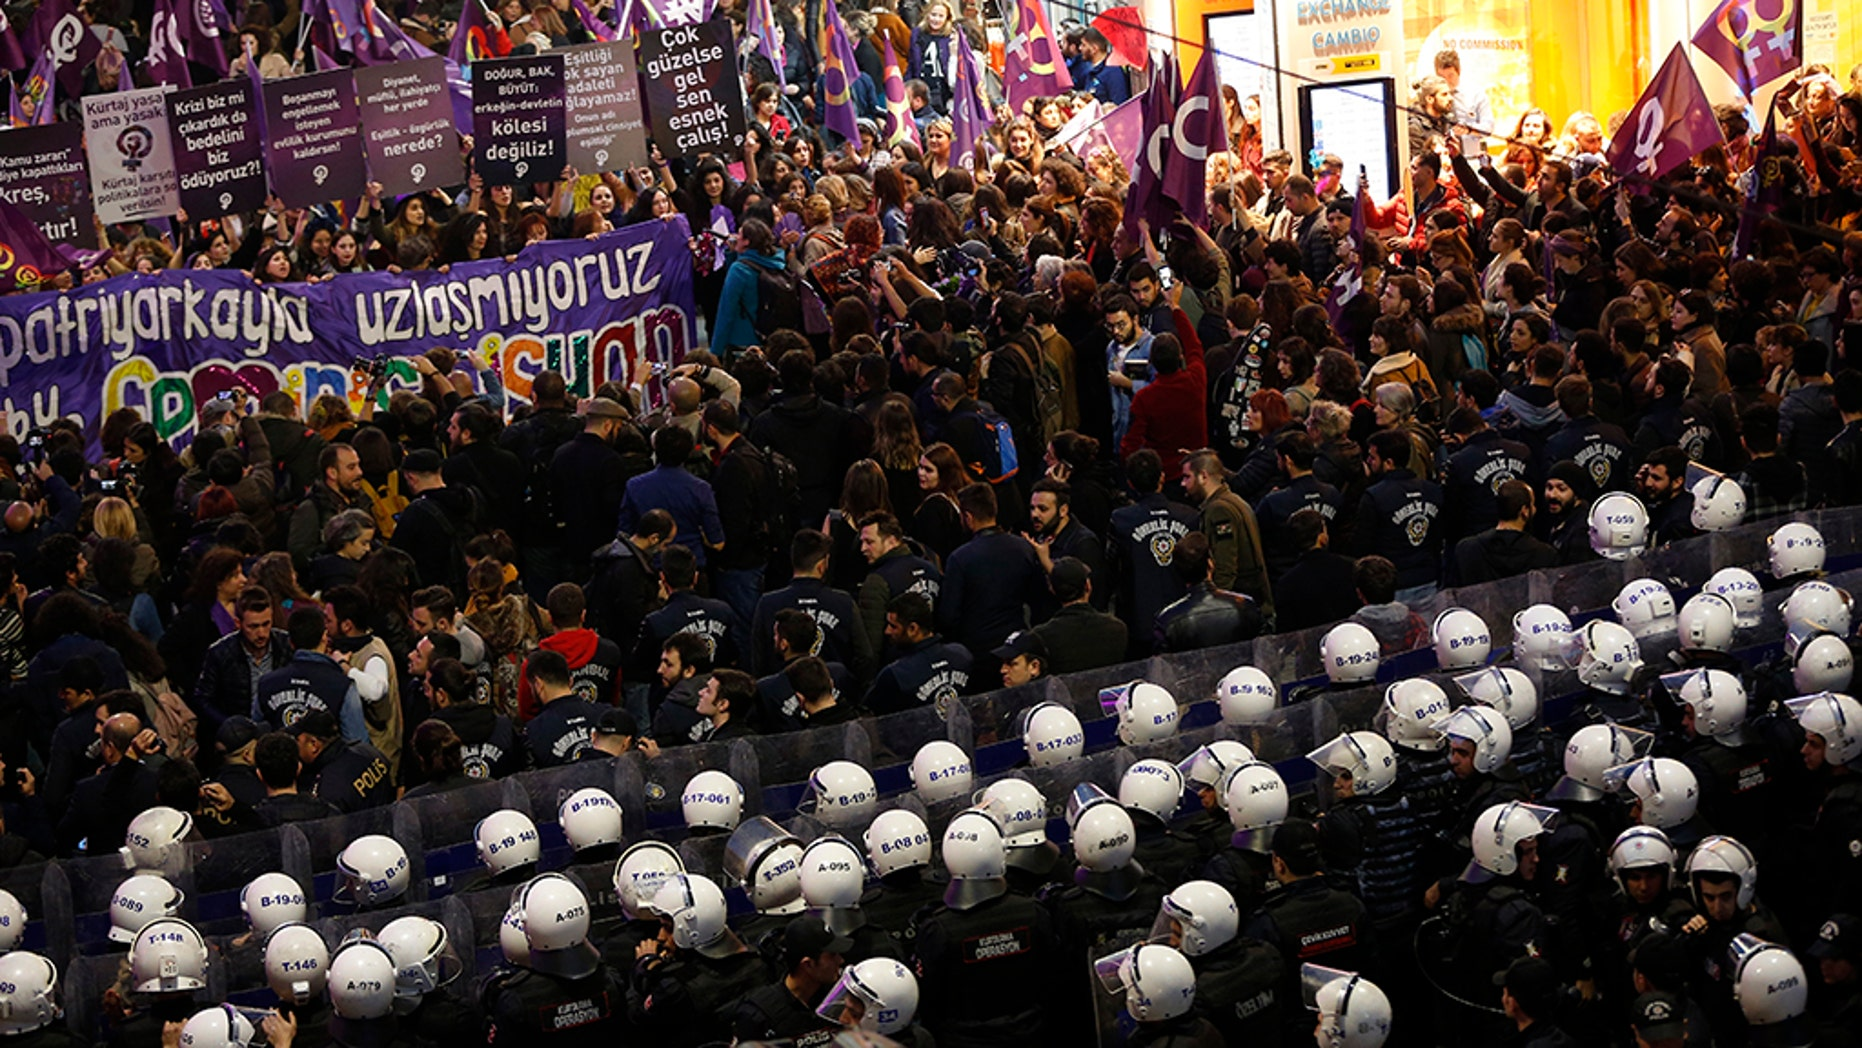 Turkish police block protesters wanting to hold a march for the International Women's Day, at Istiklal street, the main shopping street in Istanbul, Friday, March 8, 2019. The day has been sponsored by the United Nations since 1975 as millions around the world are demanding equality amid a persistent salary gap, violence and widespread inequality. (AP Photo/Lefteris Pitarakis)